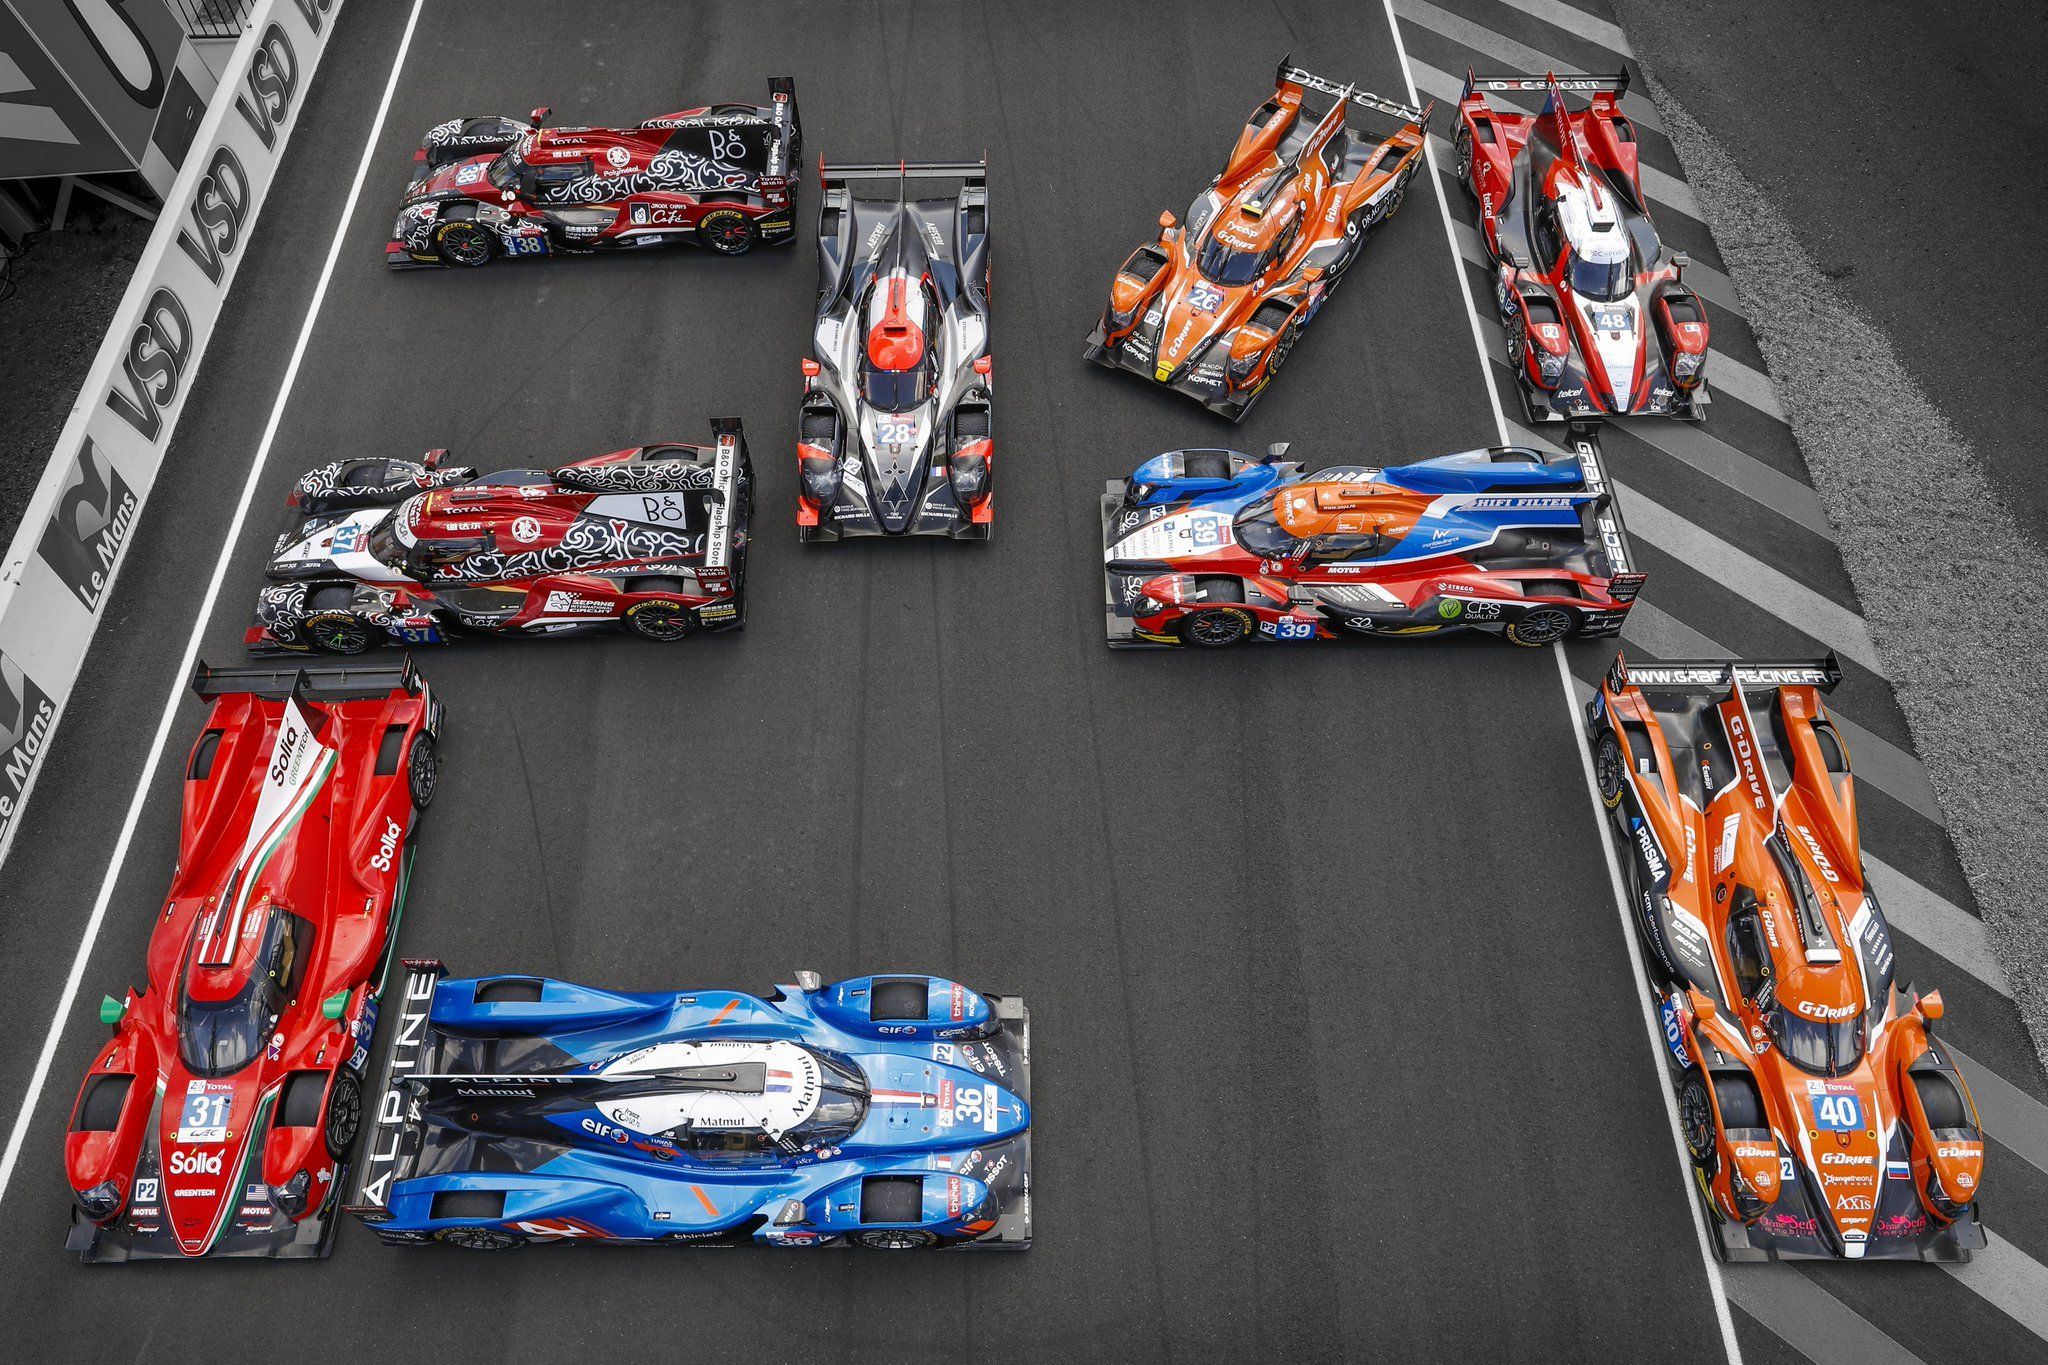 Pin by Andrés on Track Attack Race cars, Lemans car, Le mans